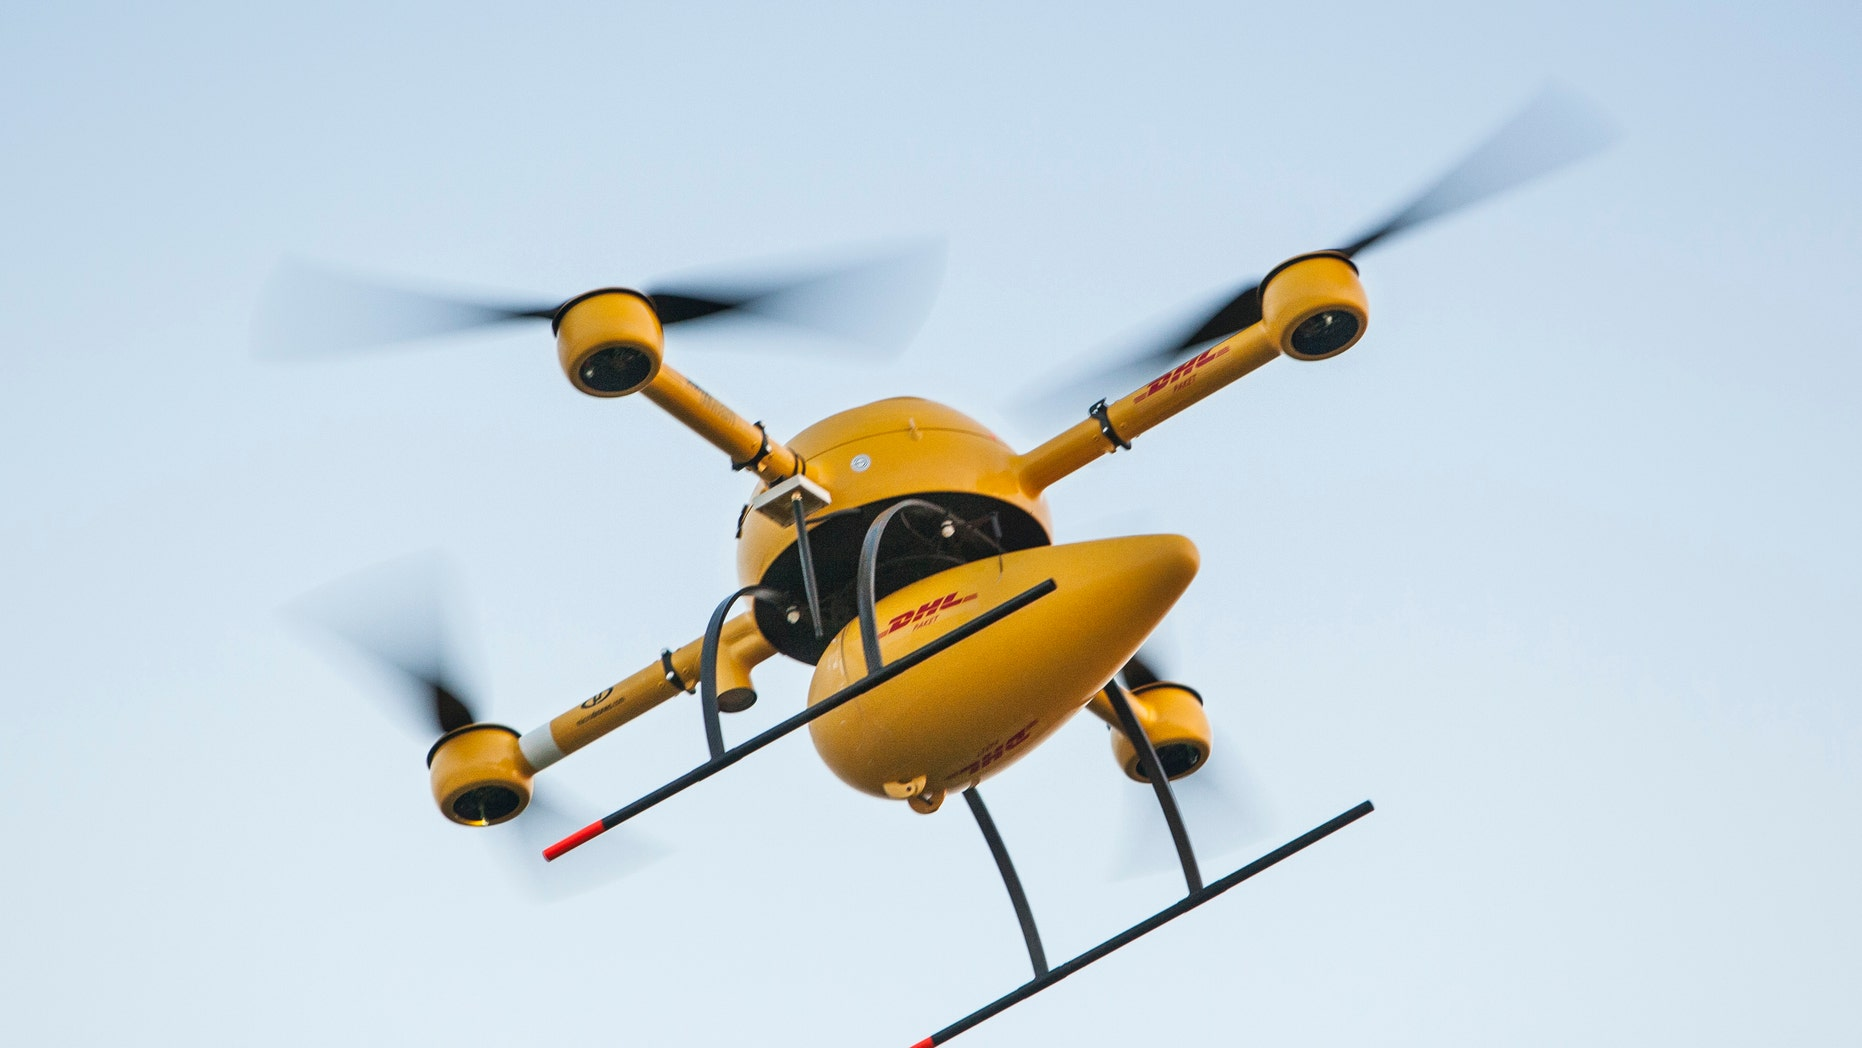 This Sept. 2014 photo provided by Deutsche Post/DHL shows a flying DHL drone in Germany.